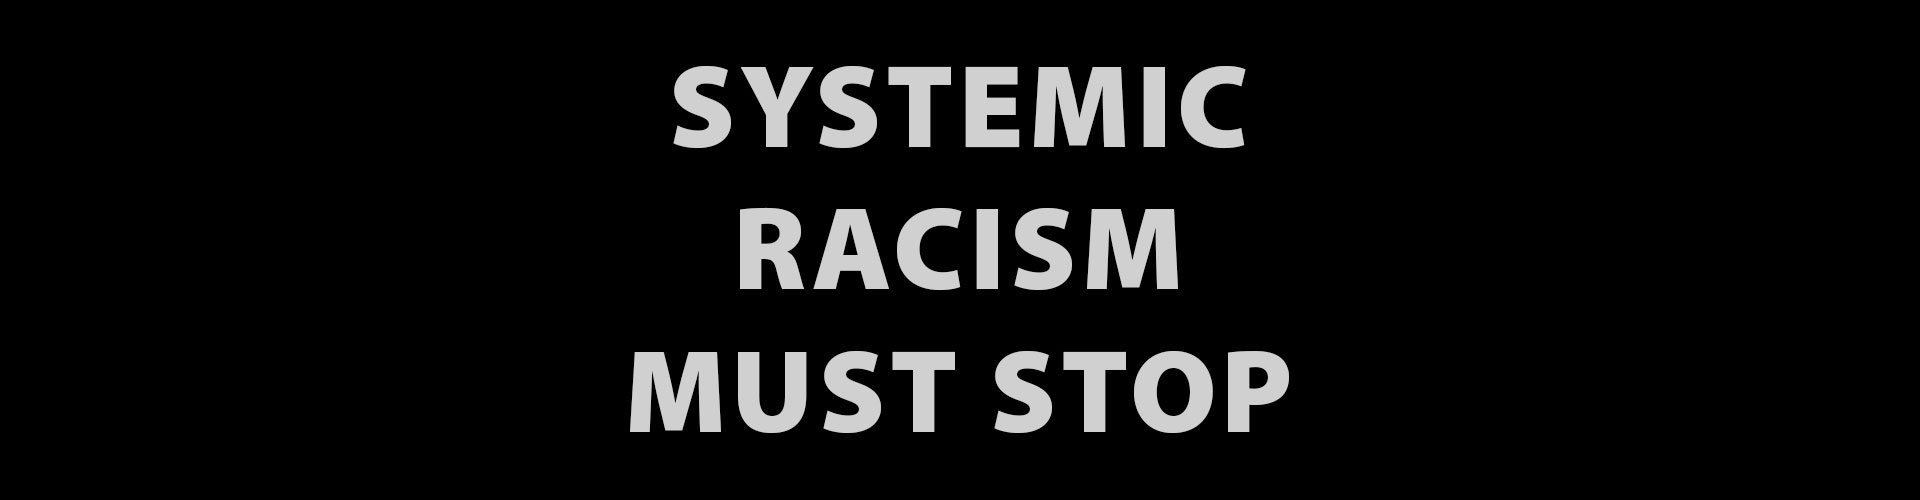 Systemic Racism Must Stop